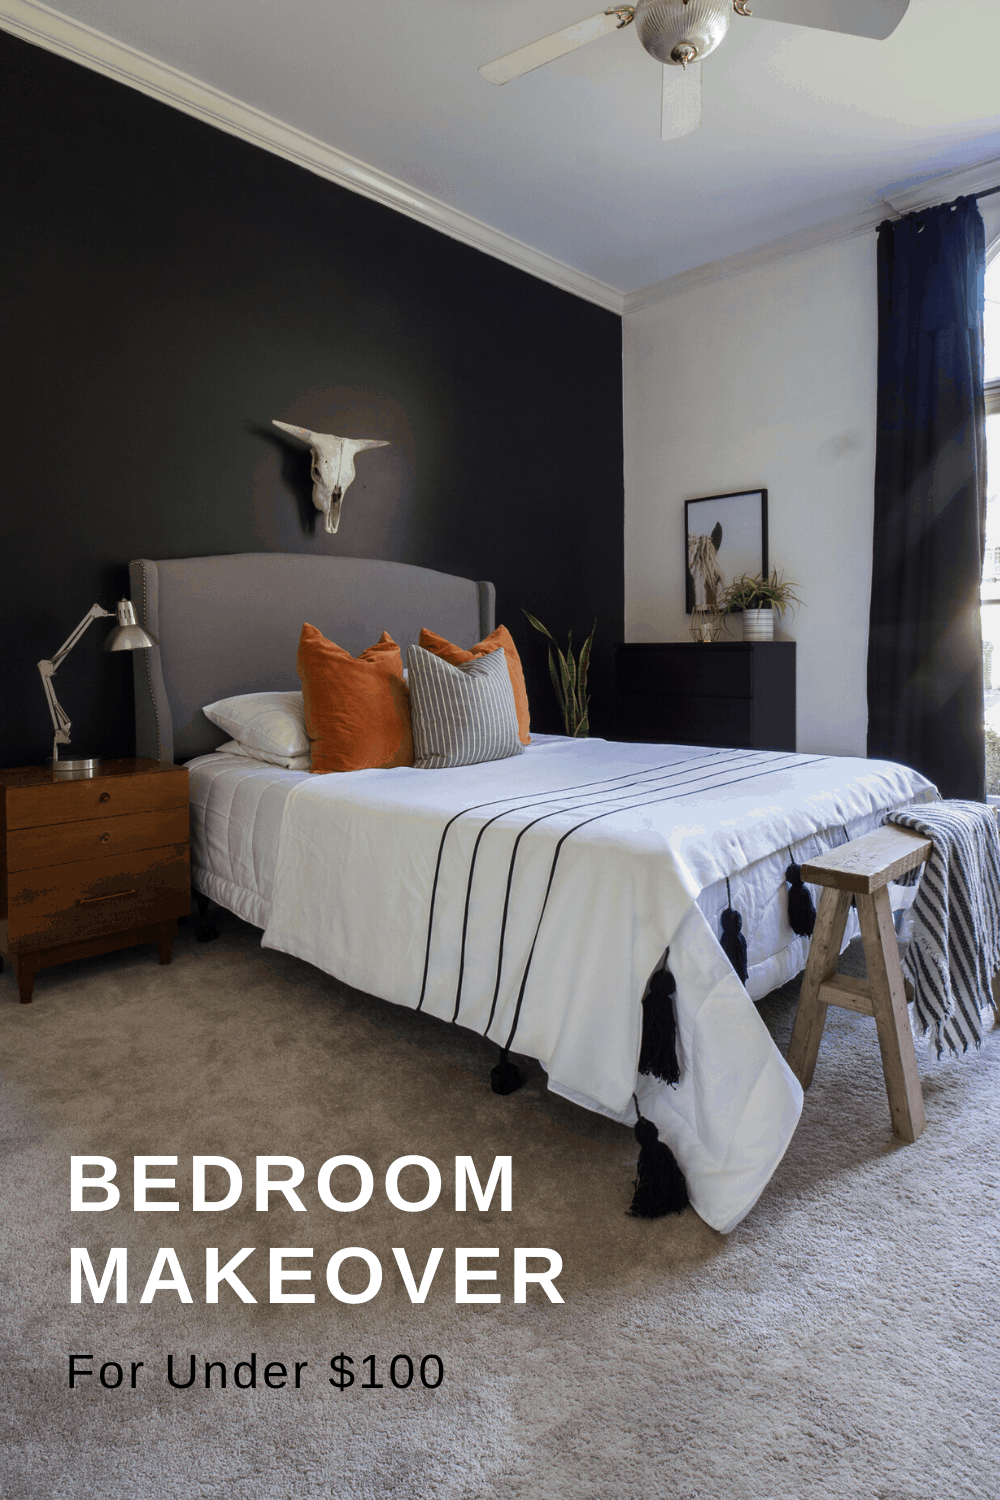 Bedroom Makeover for under $100